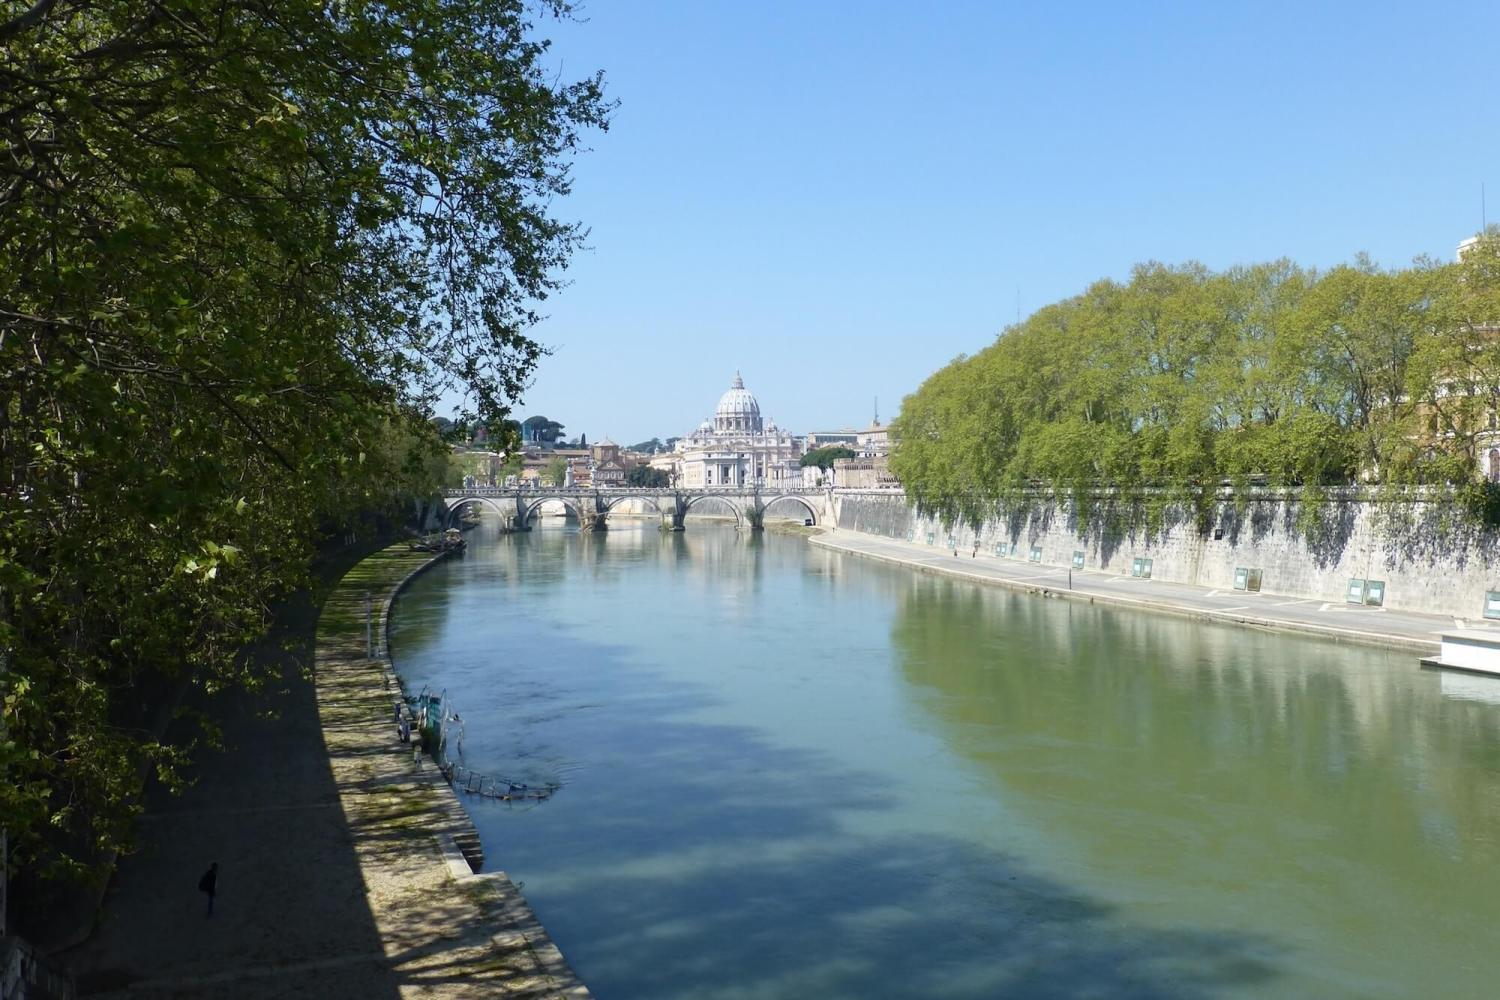 tiber river, st pauls cathedral, looking at st pauls over tiber river